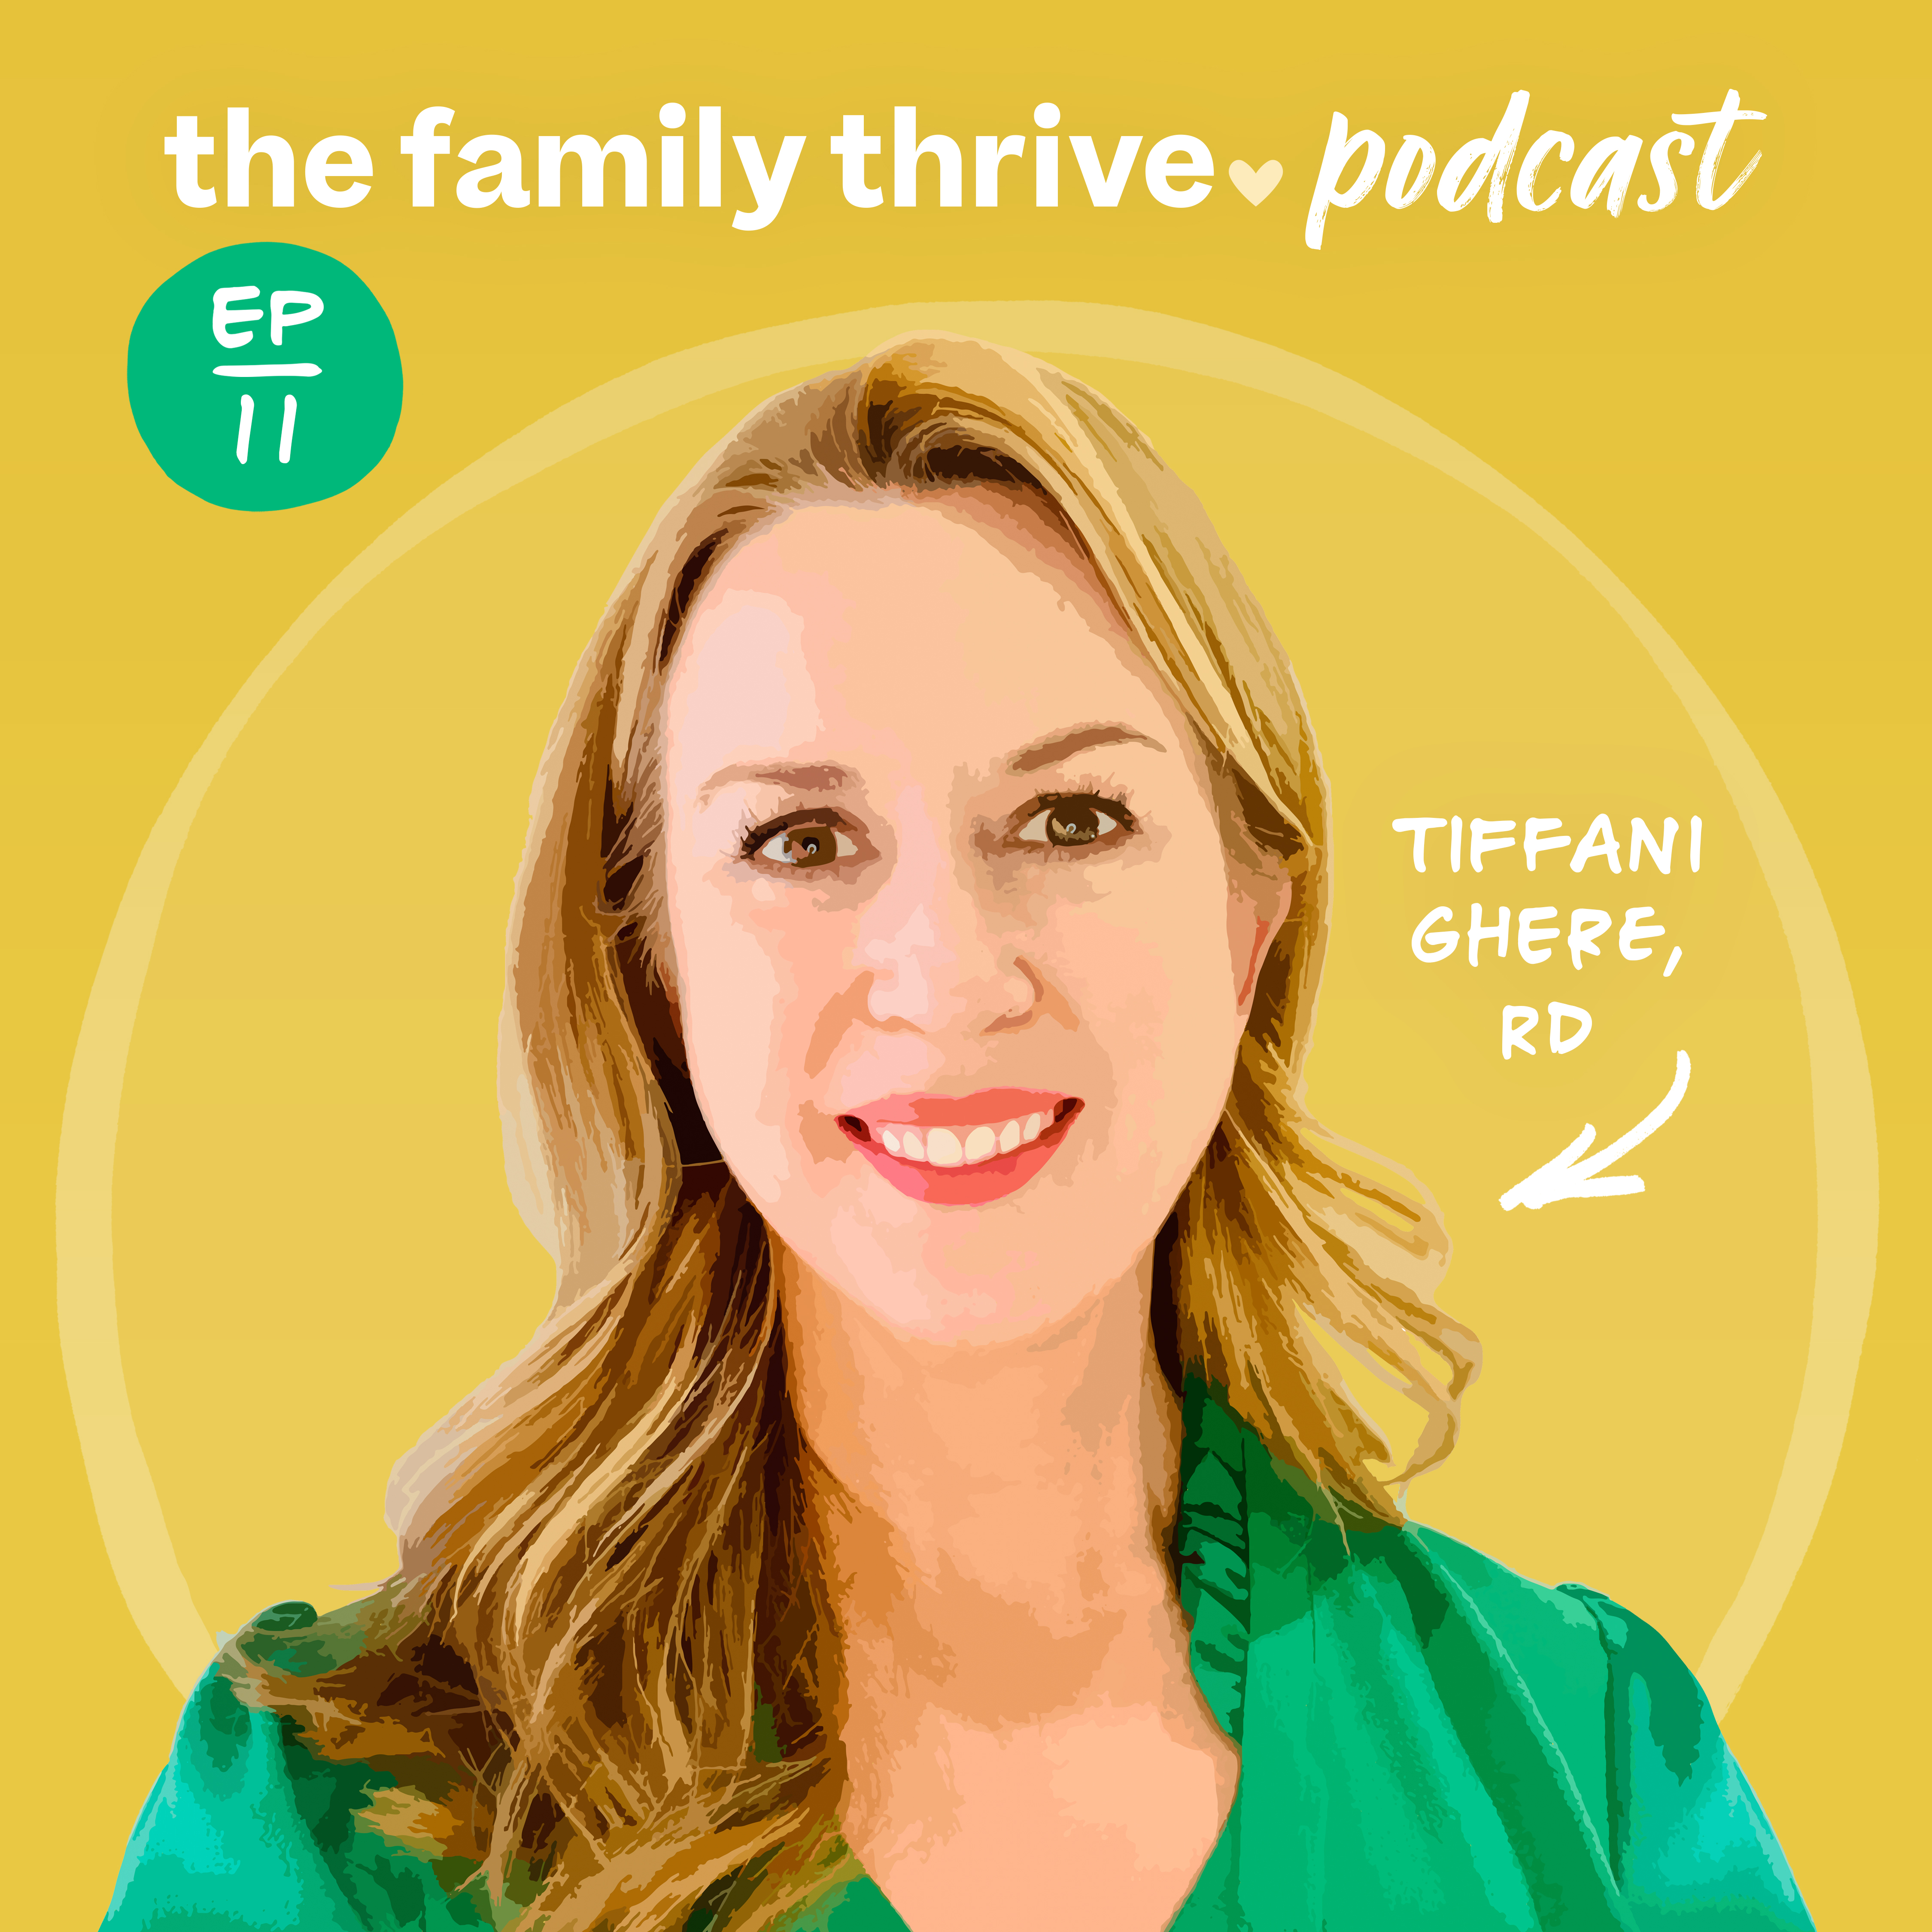 Podcast Ep. 11: Feeding Kids From Infancy Through Adulthood With Tiffani Ghere, RD, CSP, CLEC